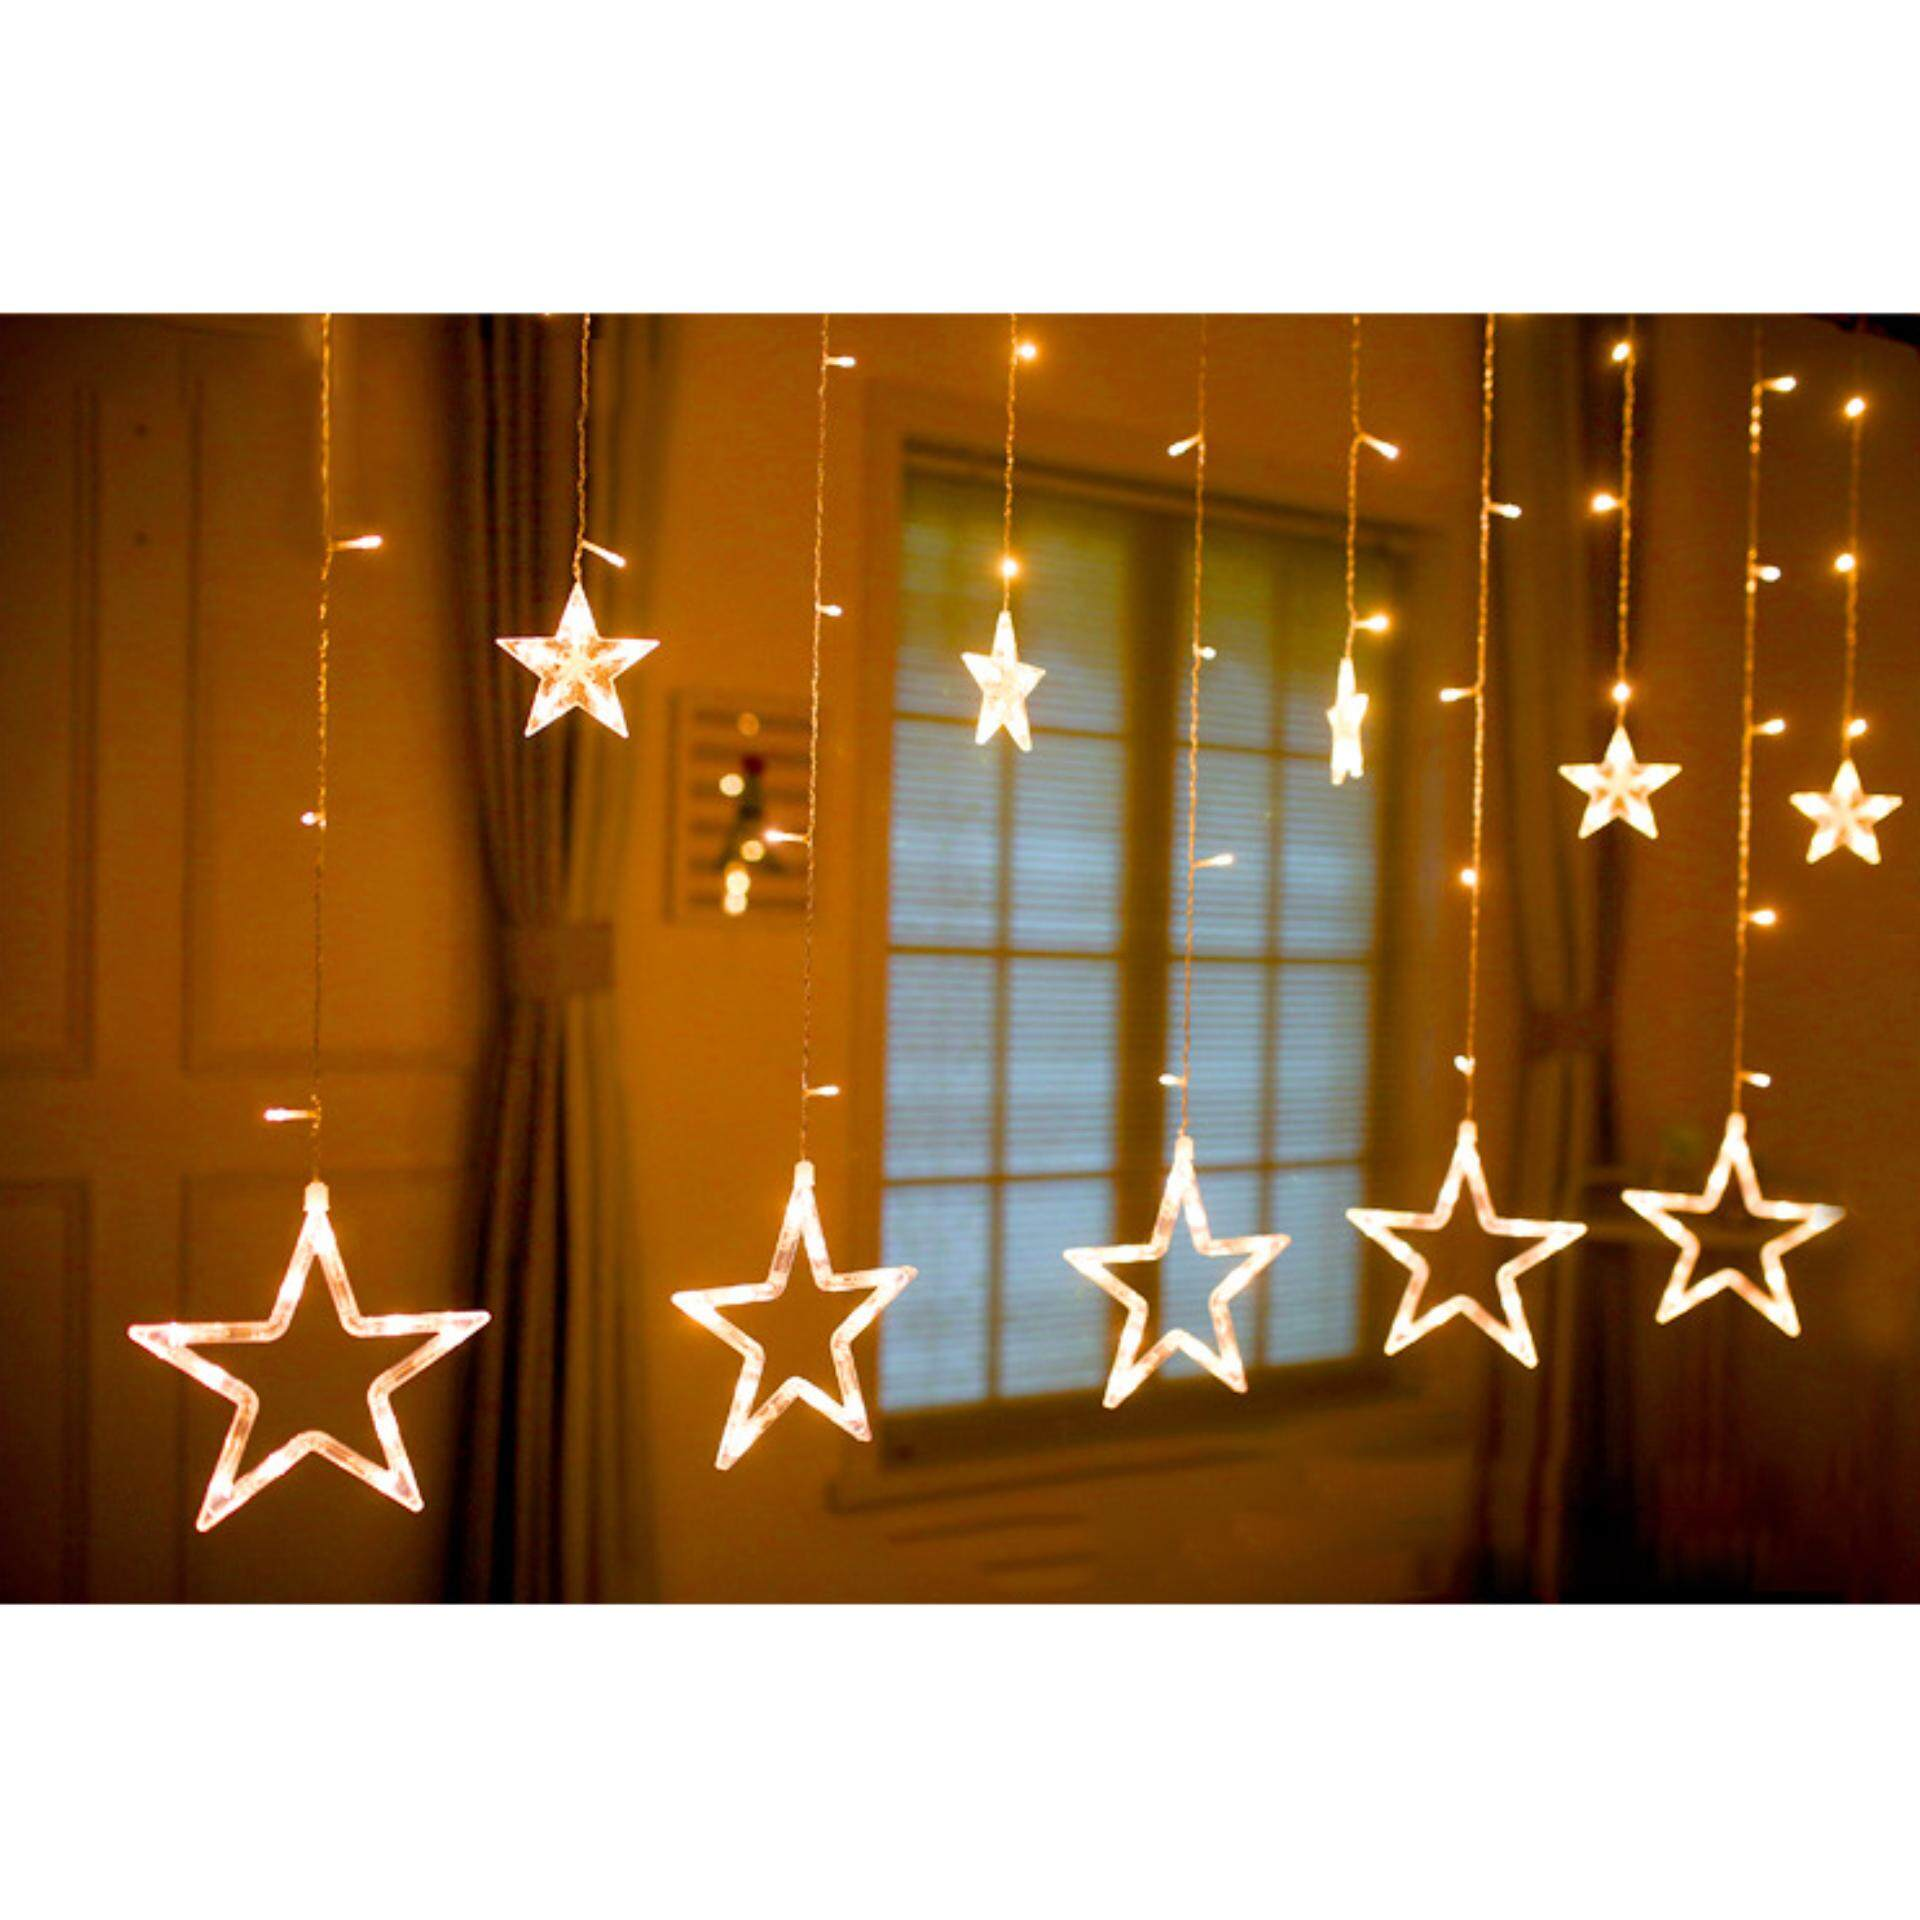 Fairy Lights For Sale  Led Fairy Light Prices, Brands